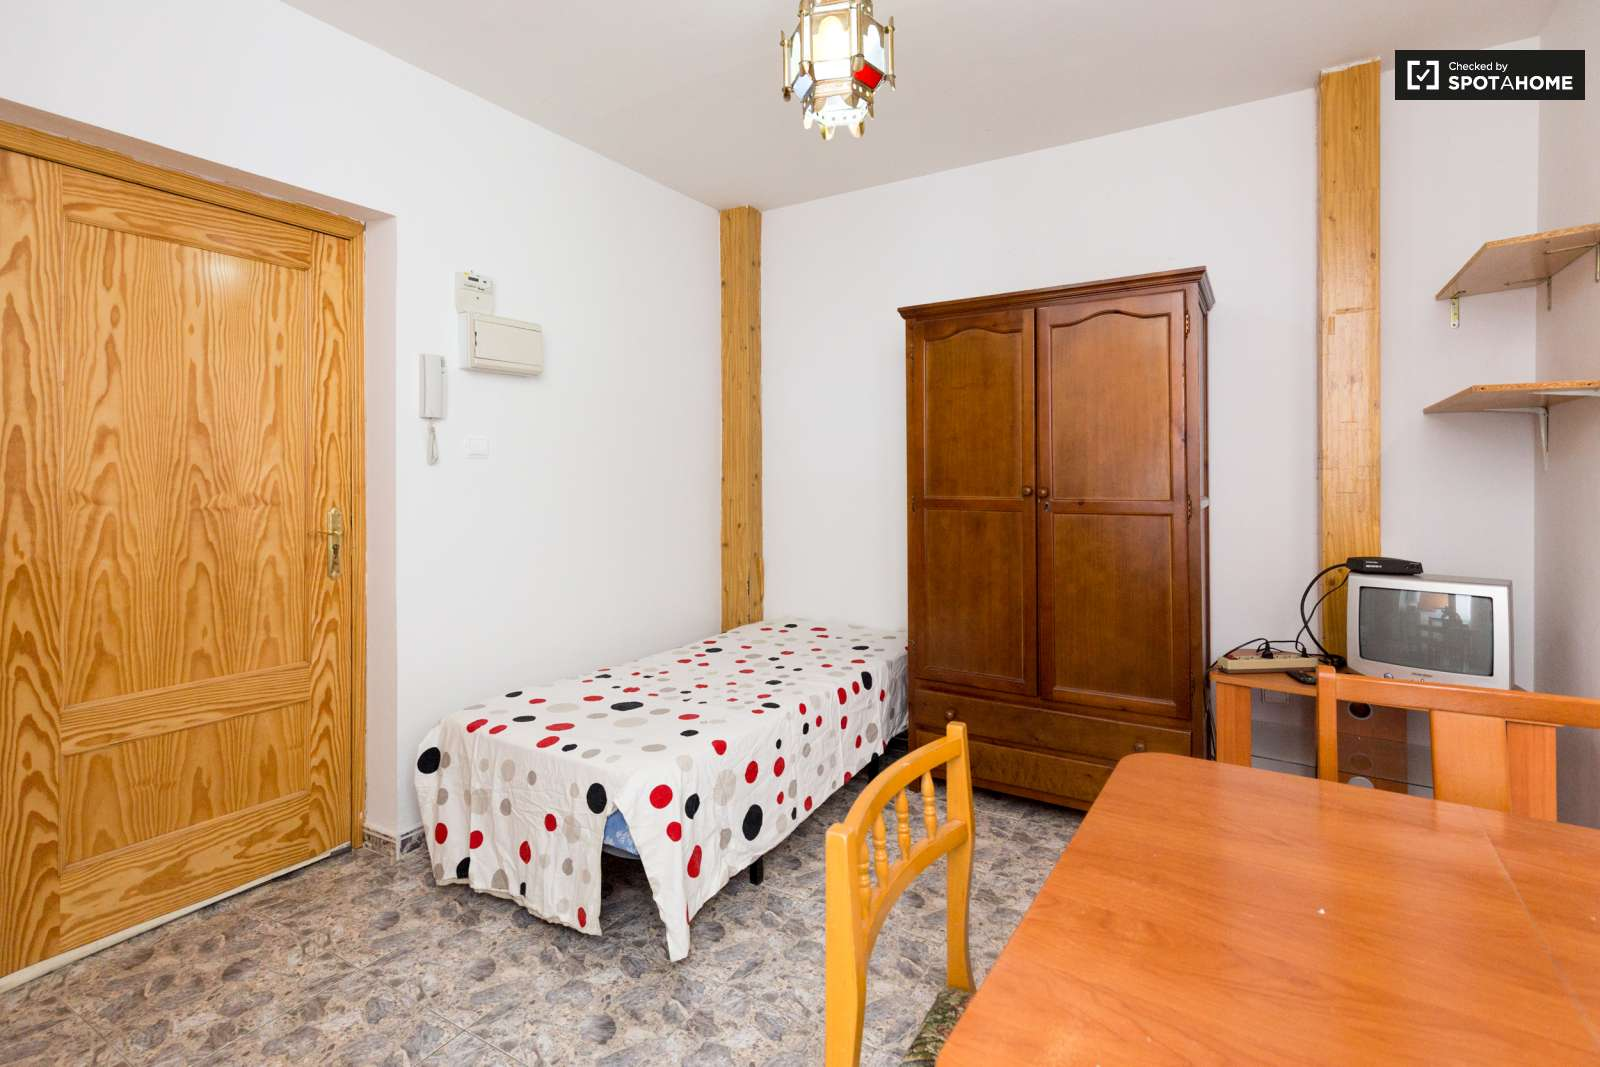 Studio Apartment For Rent In Centro Granada Ref 136875 Spotahome # Muebles Centro Estant